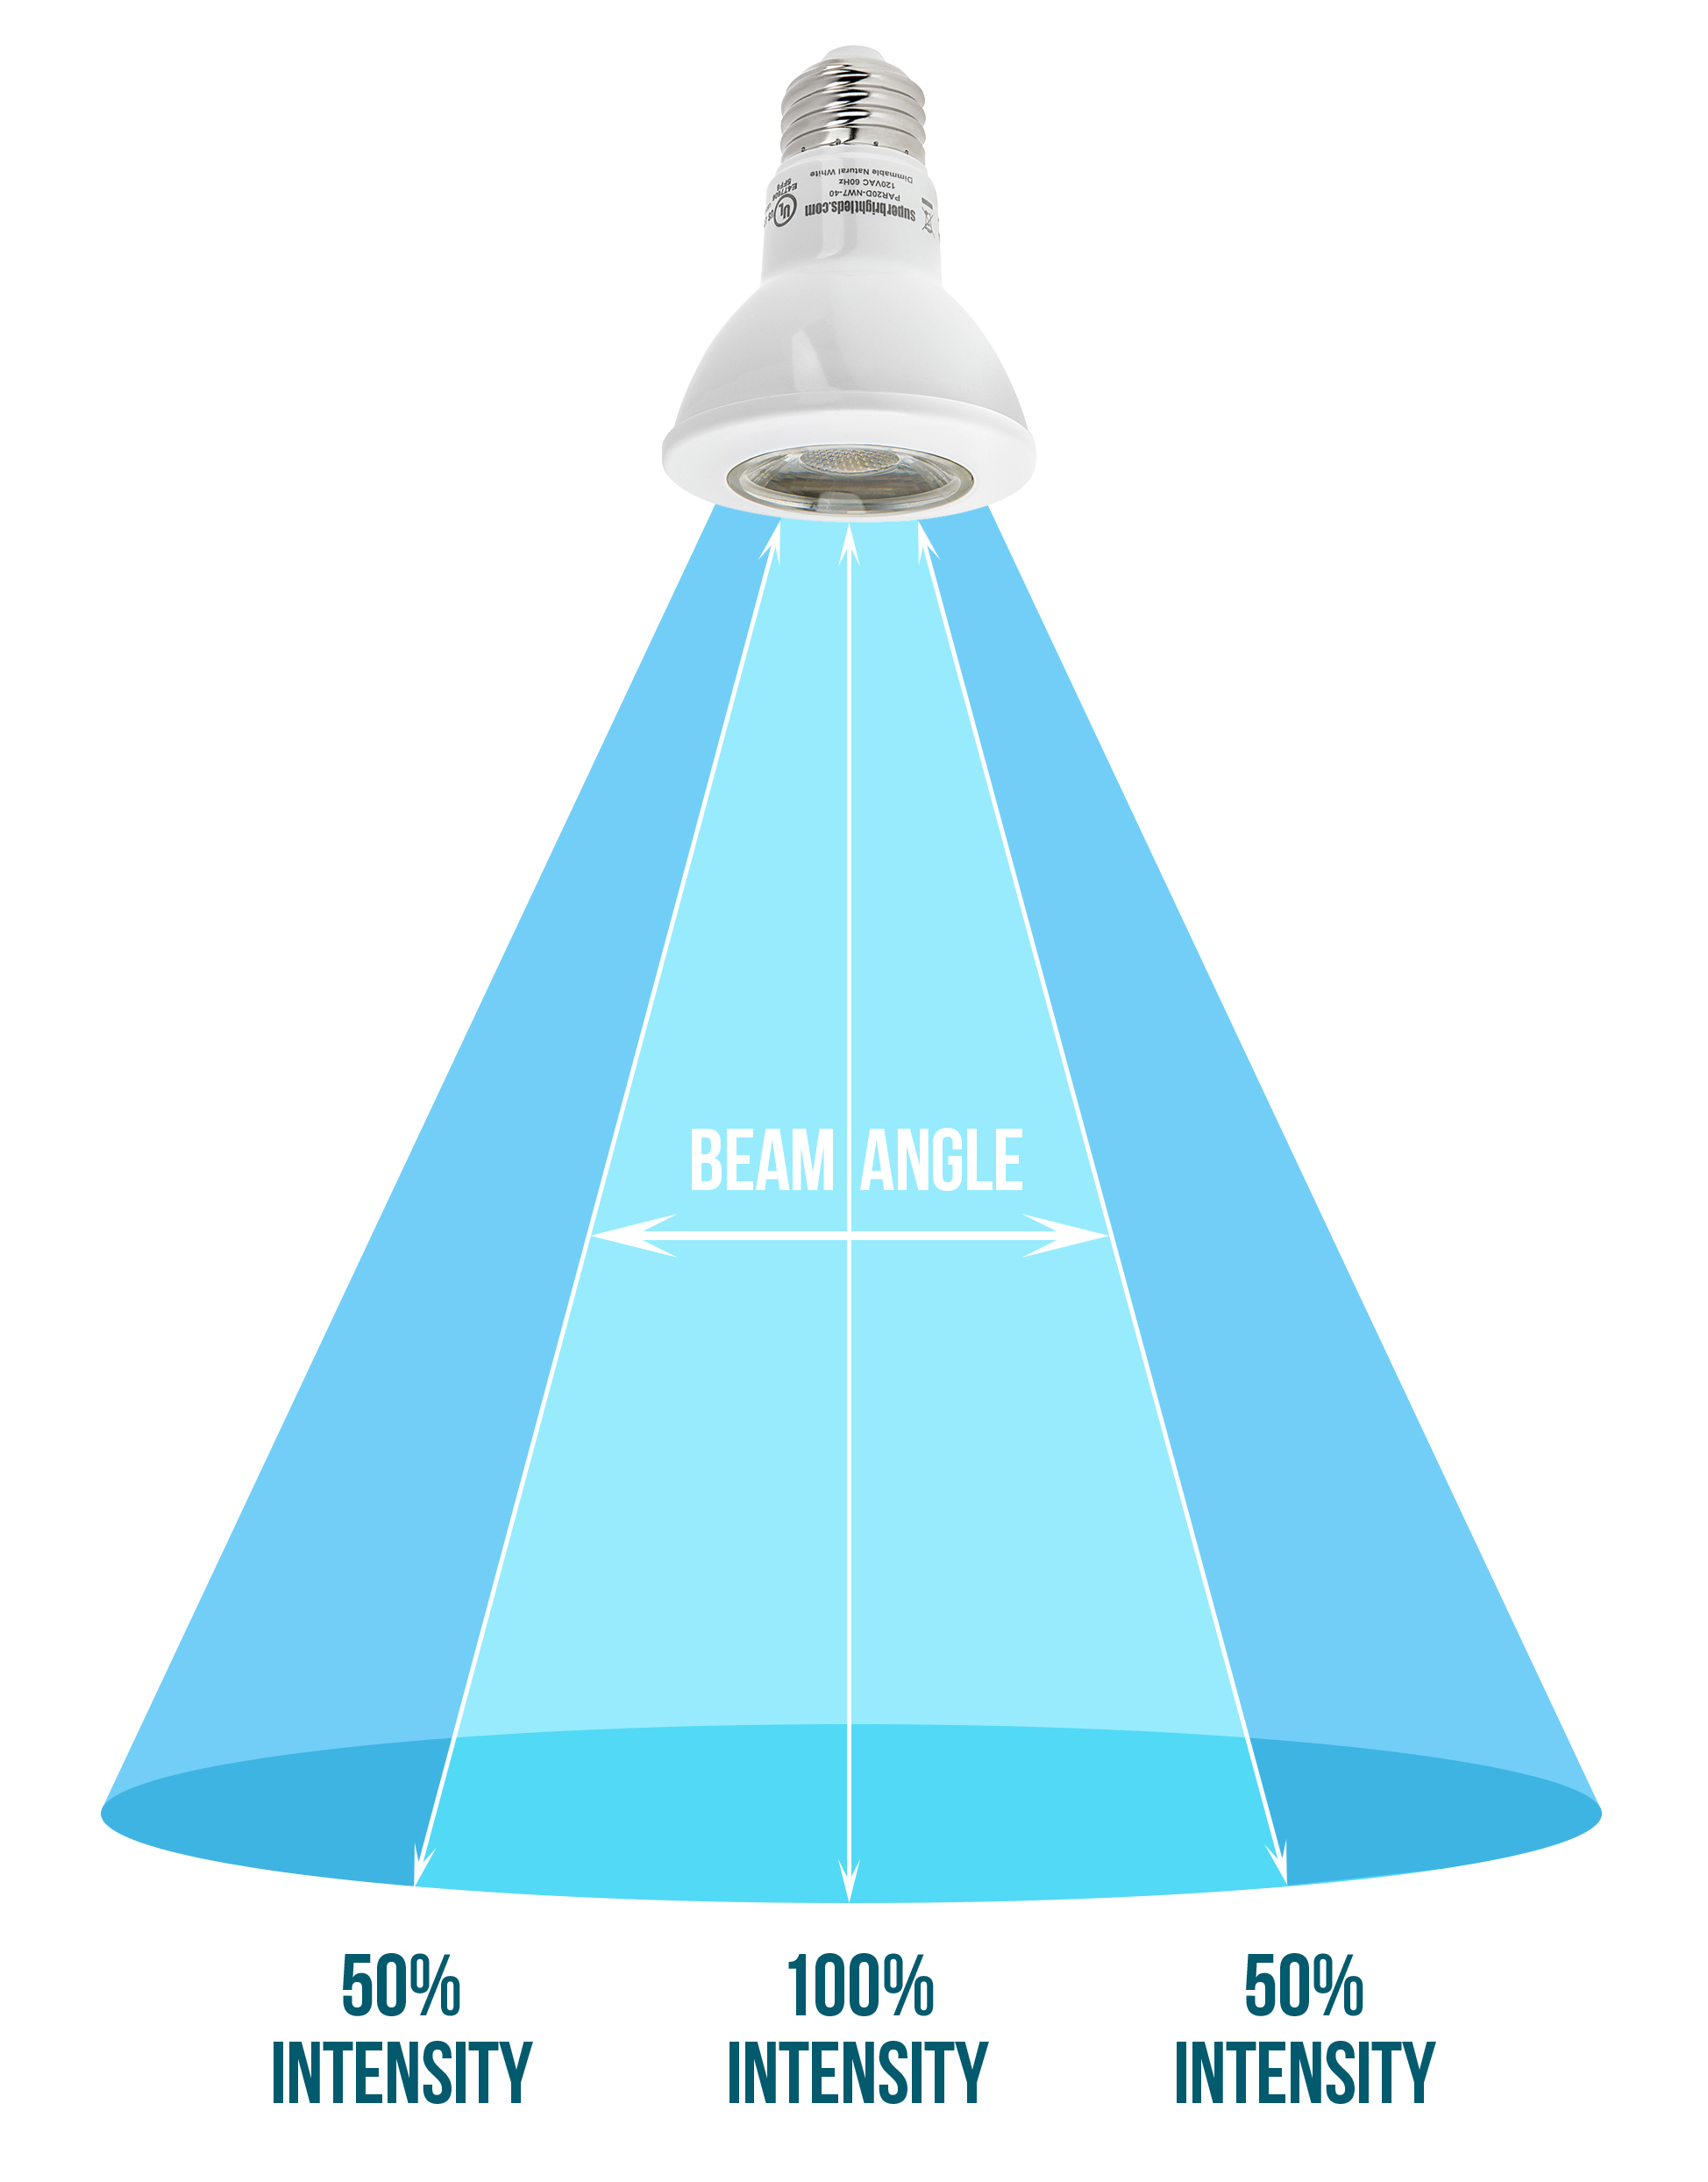 how to light a room with LED lights - Beam Angle